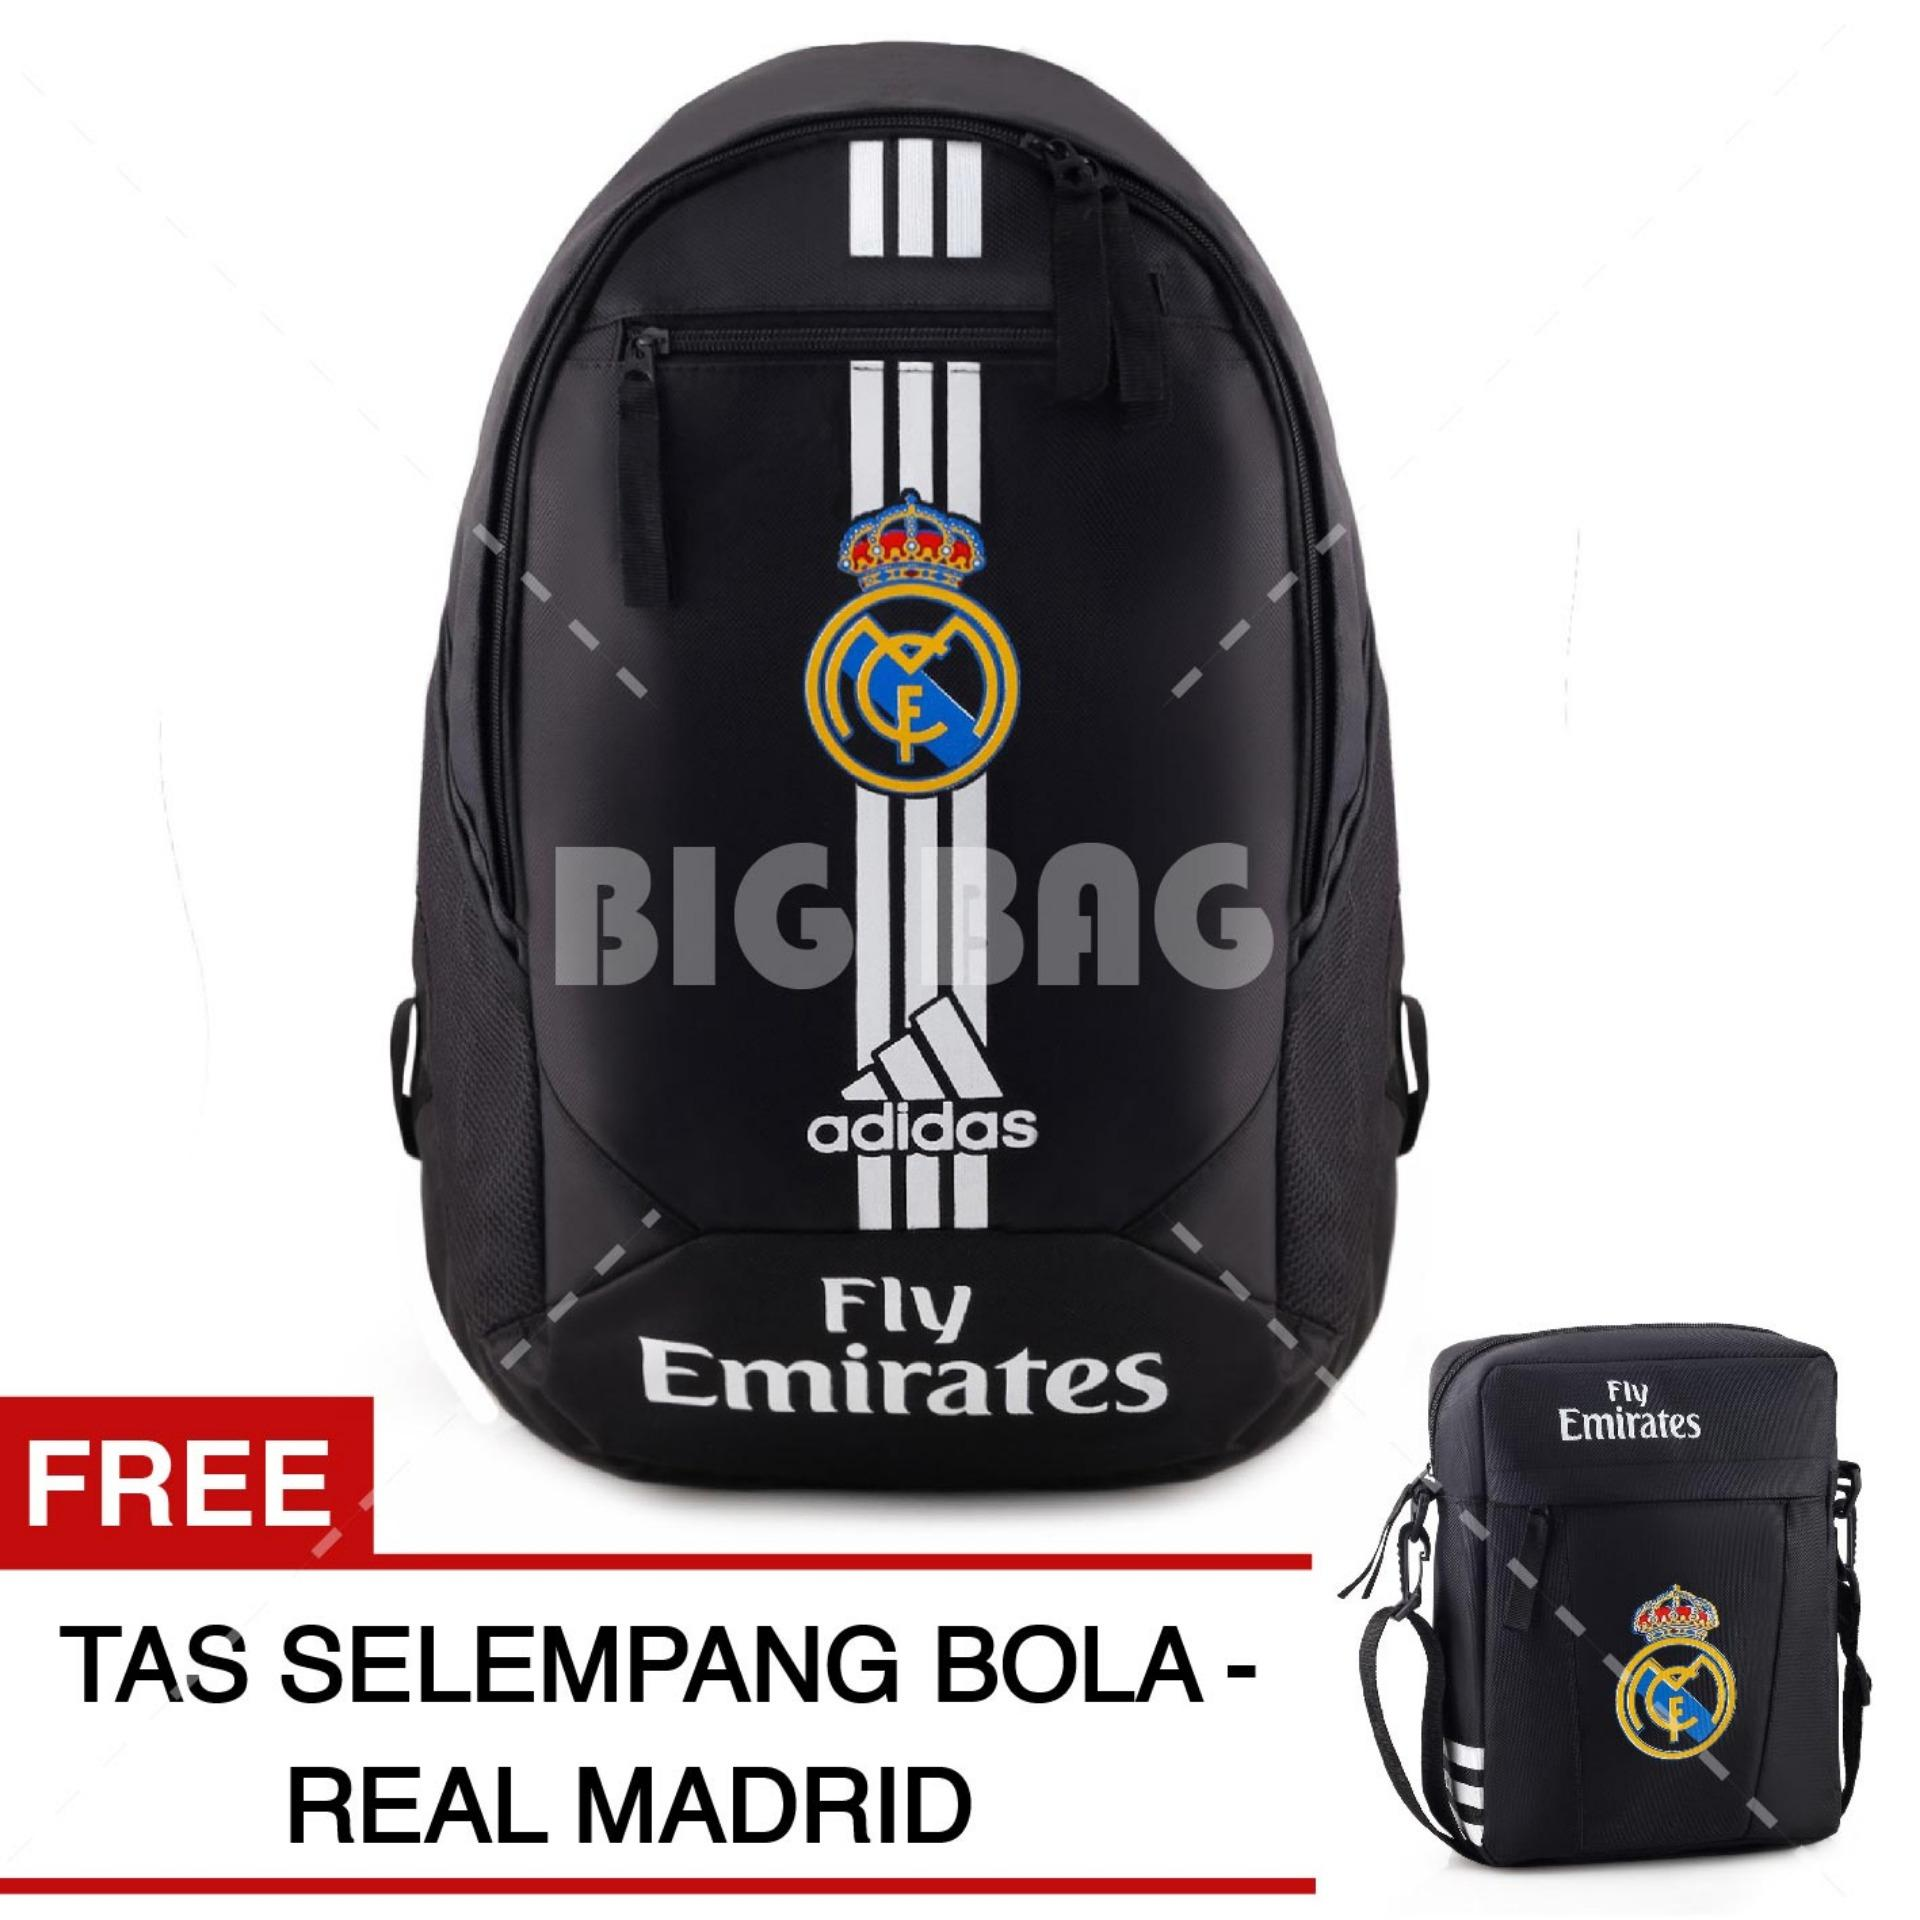 Tas Ransel Adidas Bola Pria Real Madrid C.F Laptop Backpack Men Soccer Editions - Black + Raincover + FREE Tas Selempang Real Madrid - Black